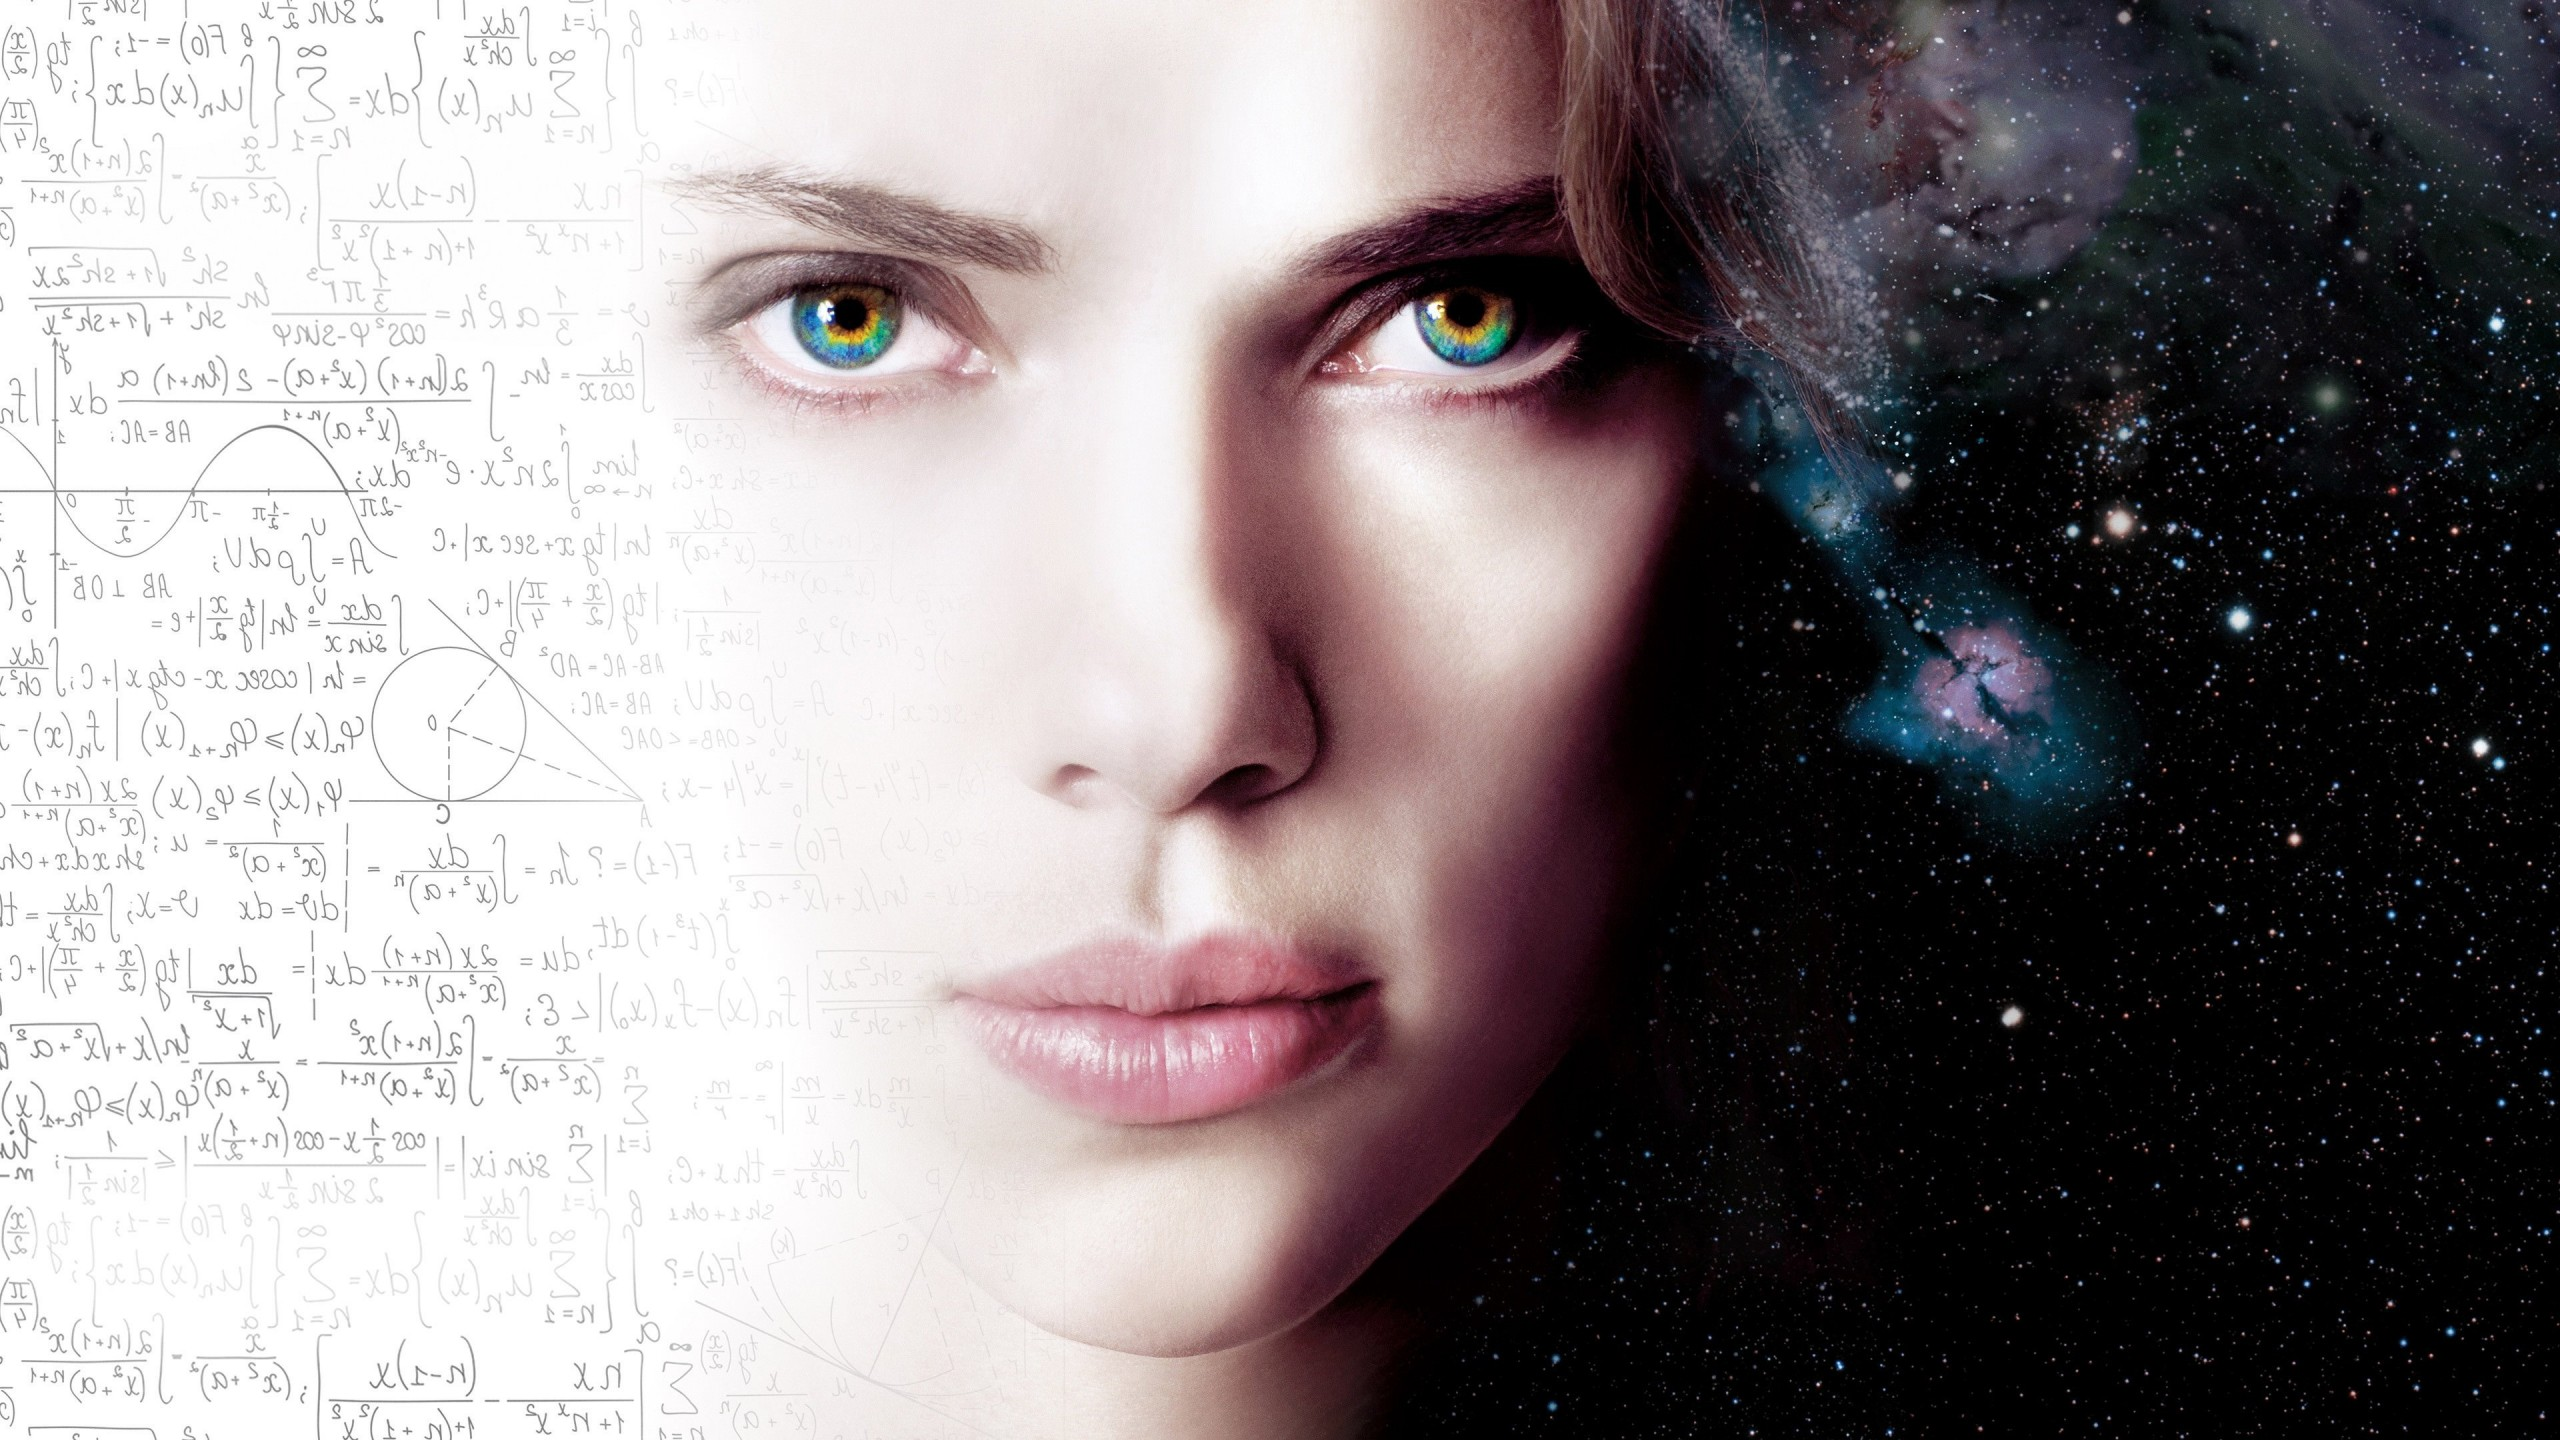 Scarlett Johansson As Lucy Wallpaper for Desktop 2560x1440